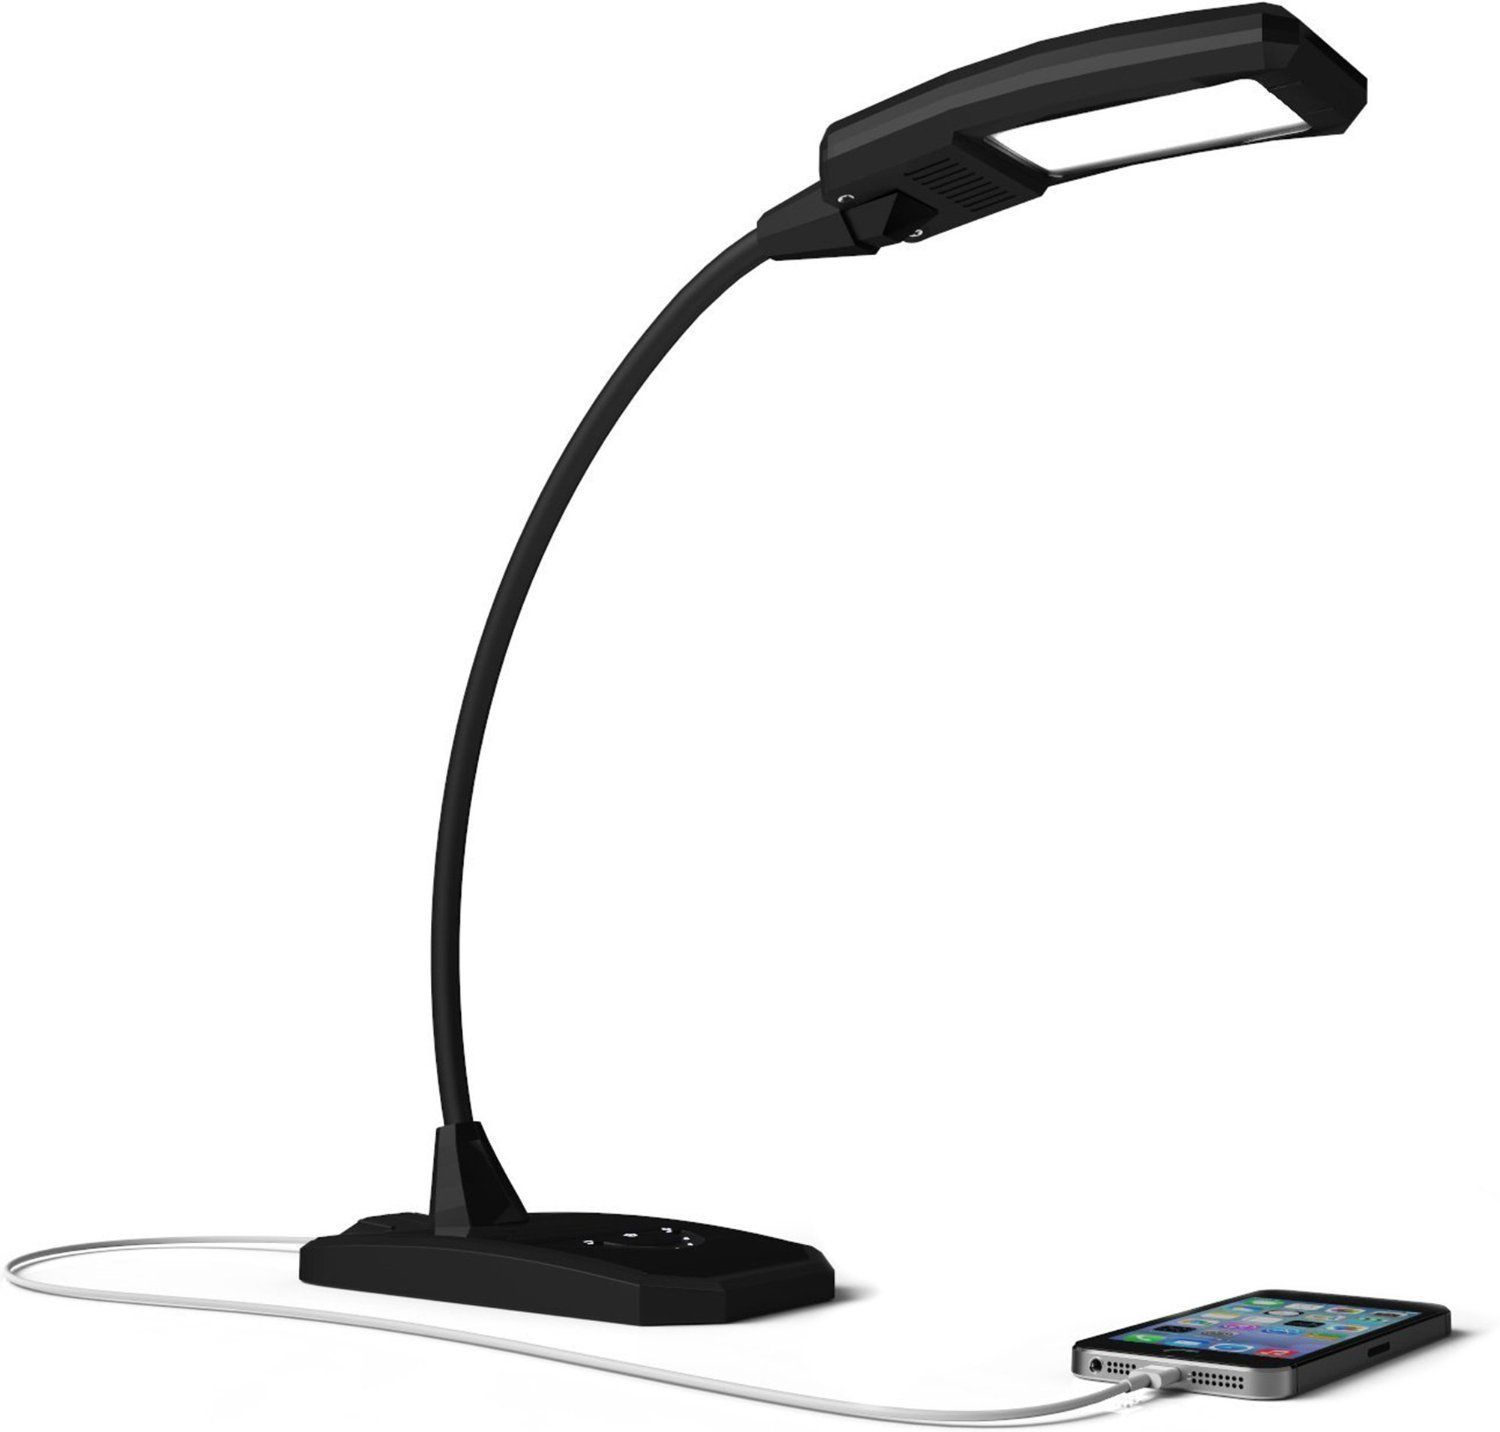 Desk Lamp With Usb Port To Charge Mobile Devices